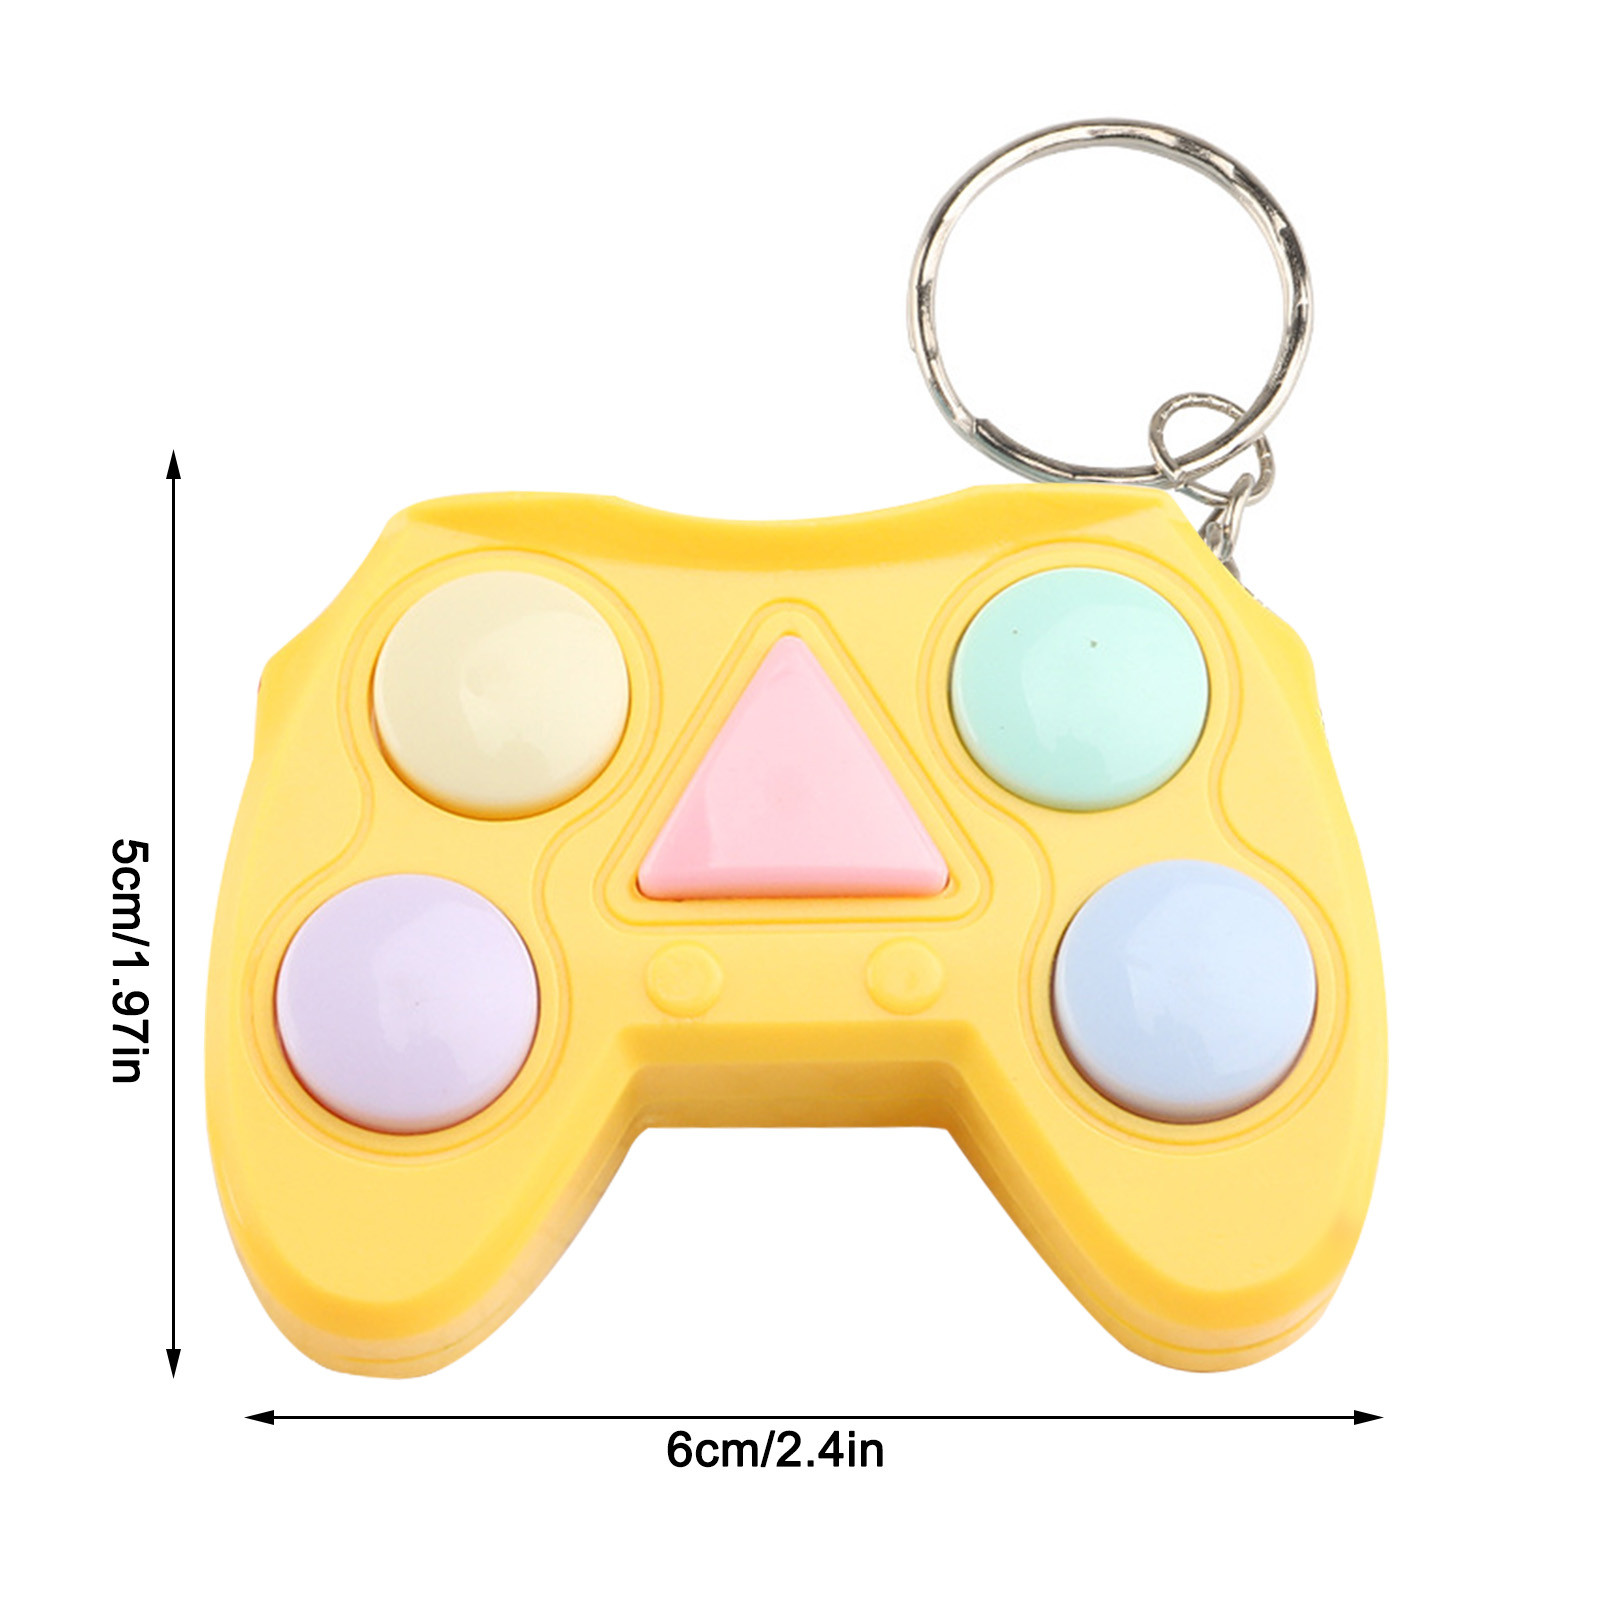 Figet Toy Keychain Memory-Stress Dimple Mini Handle Small Game Early-Educational Electronic img3